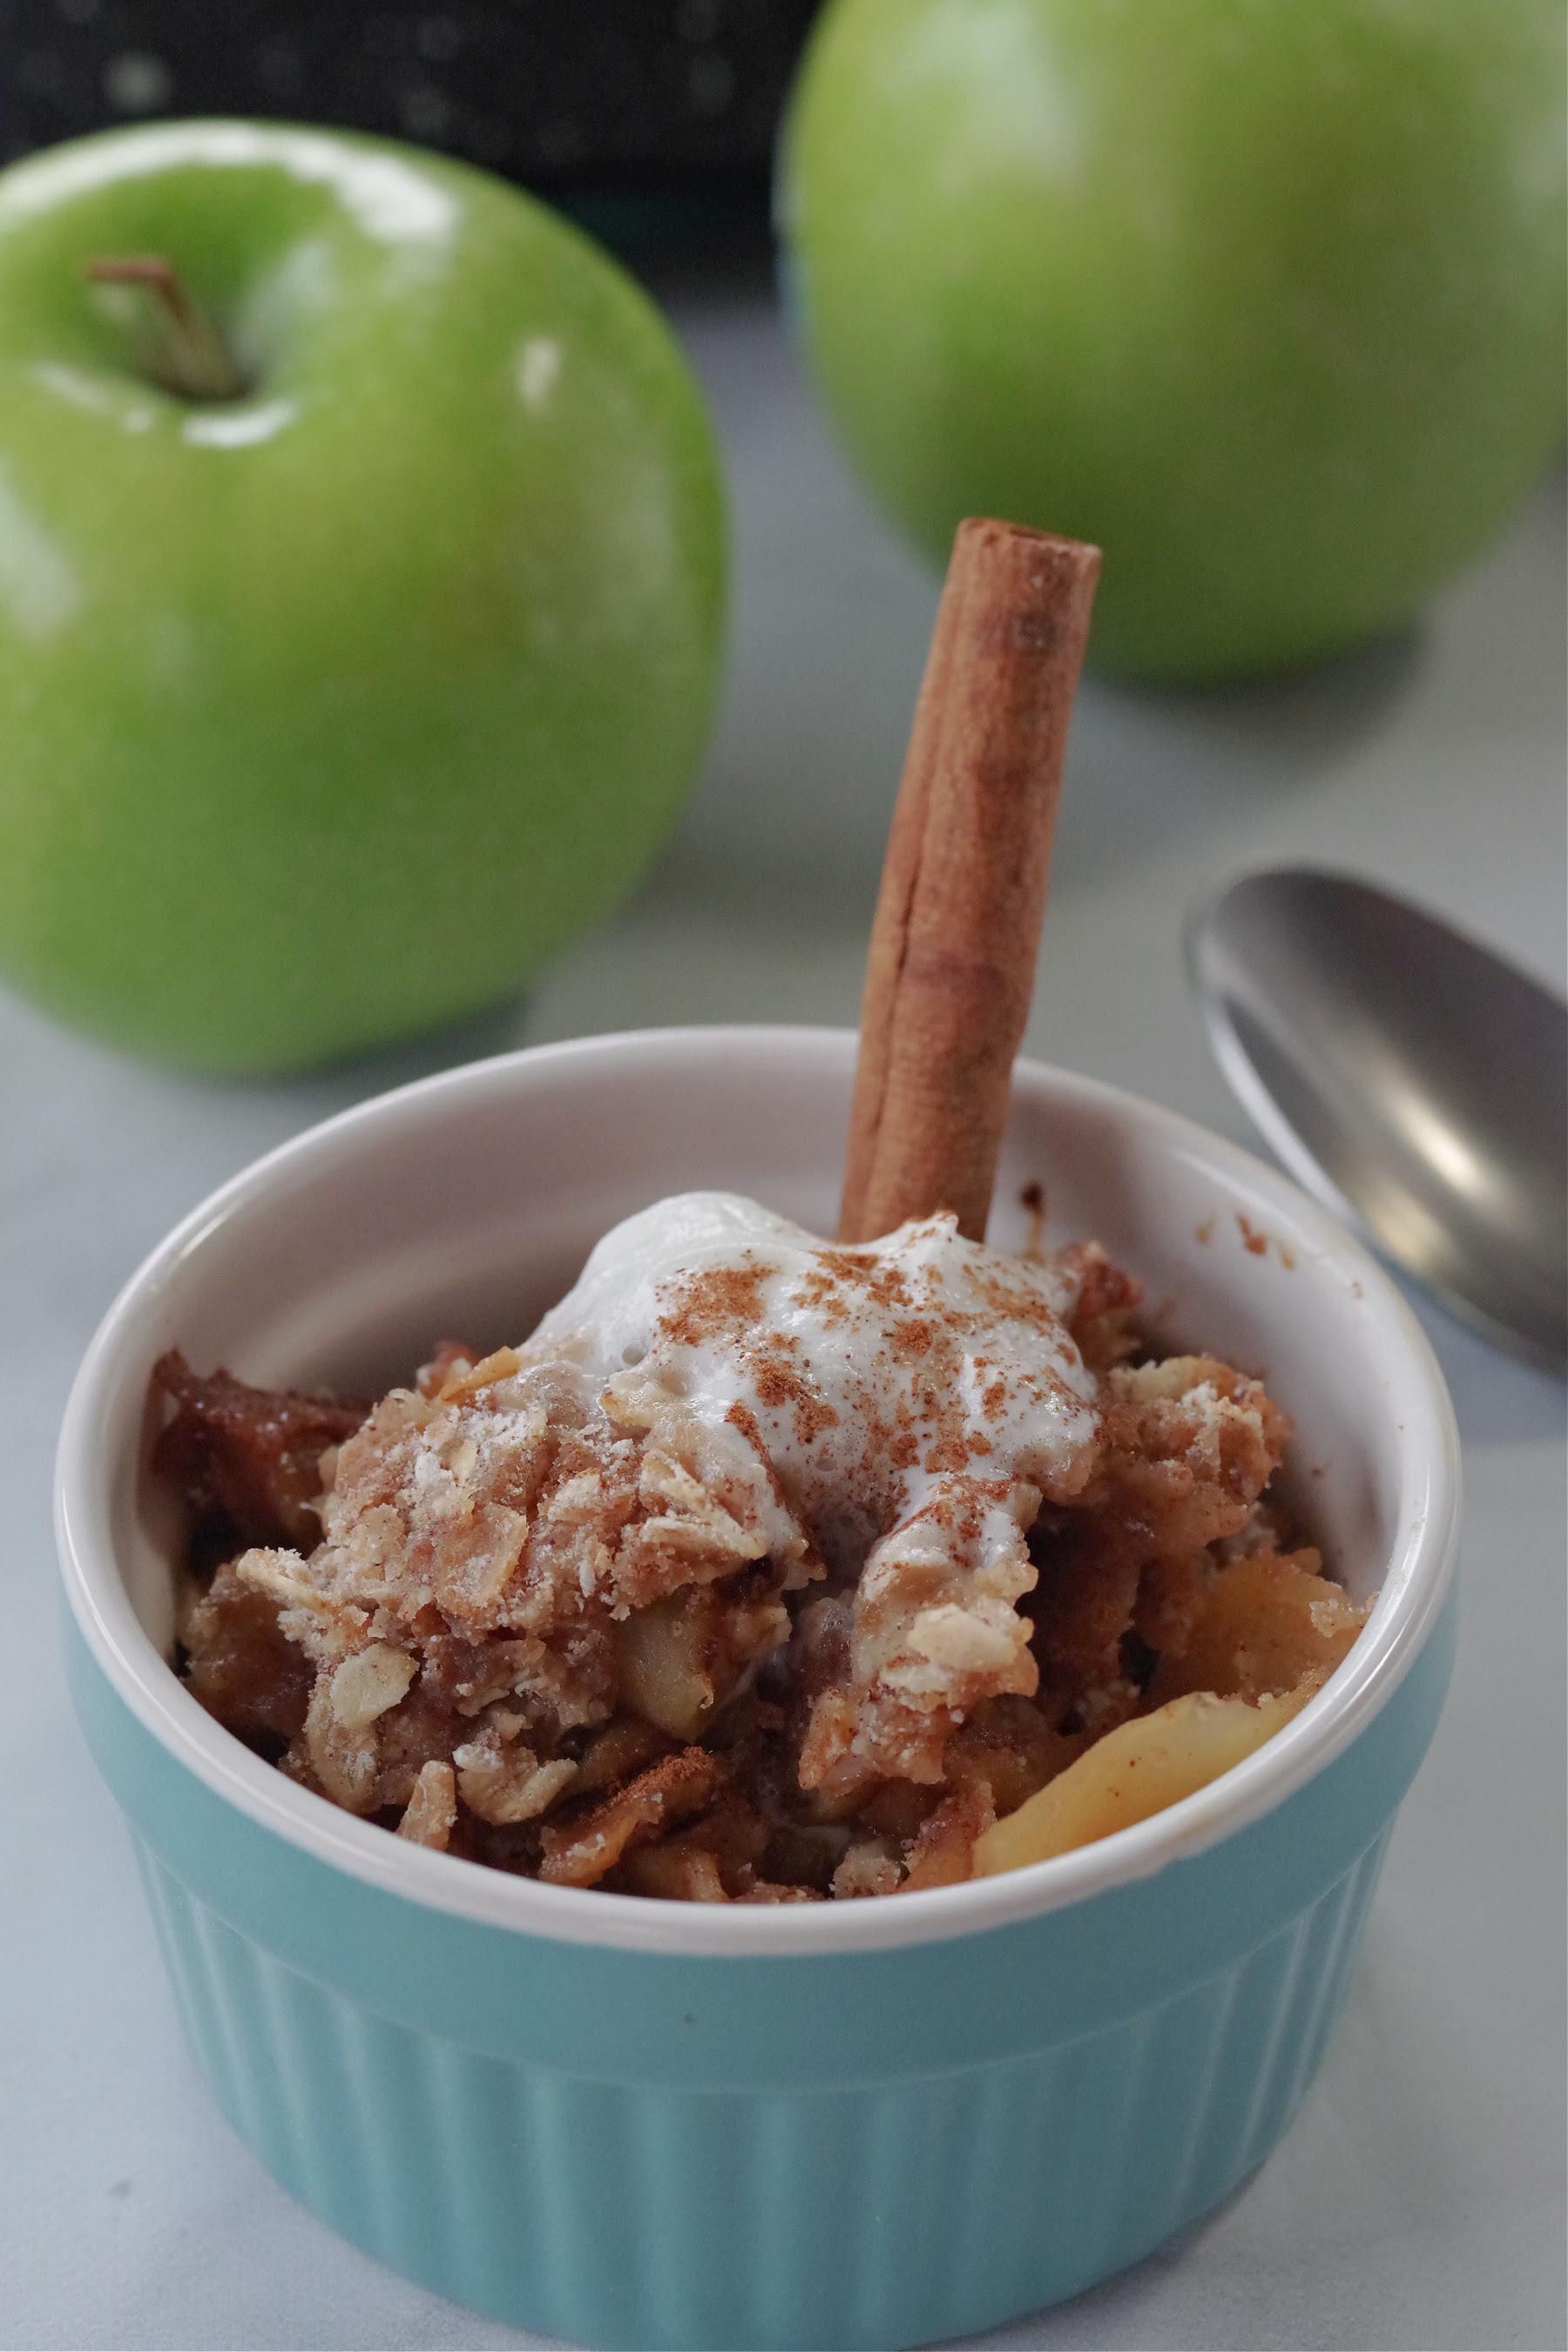 weight watchers apple crisp in a small blue bowl with a cinnamon stick in it and 2 green apples and a spoon in the background